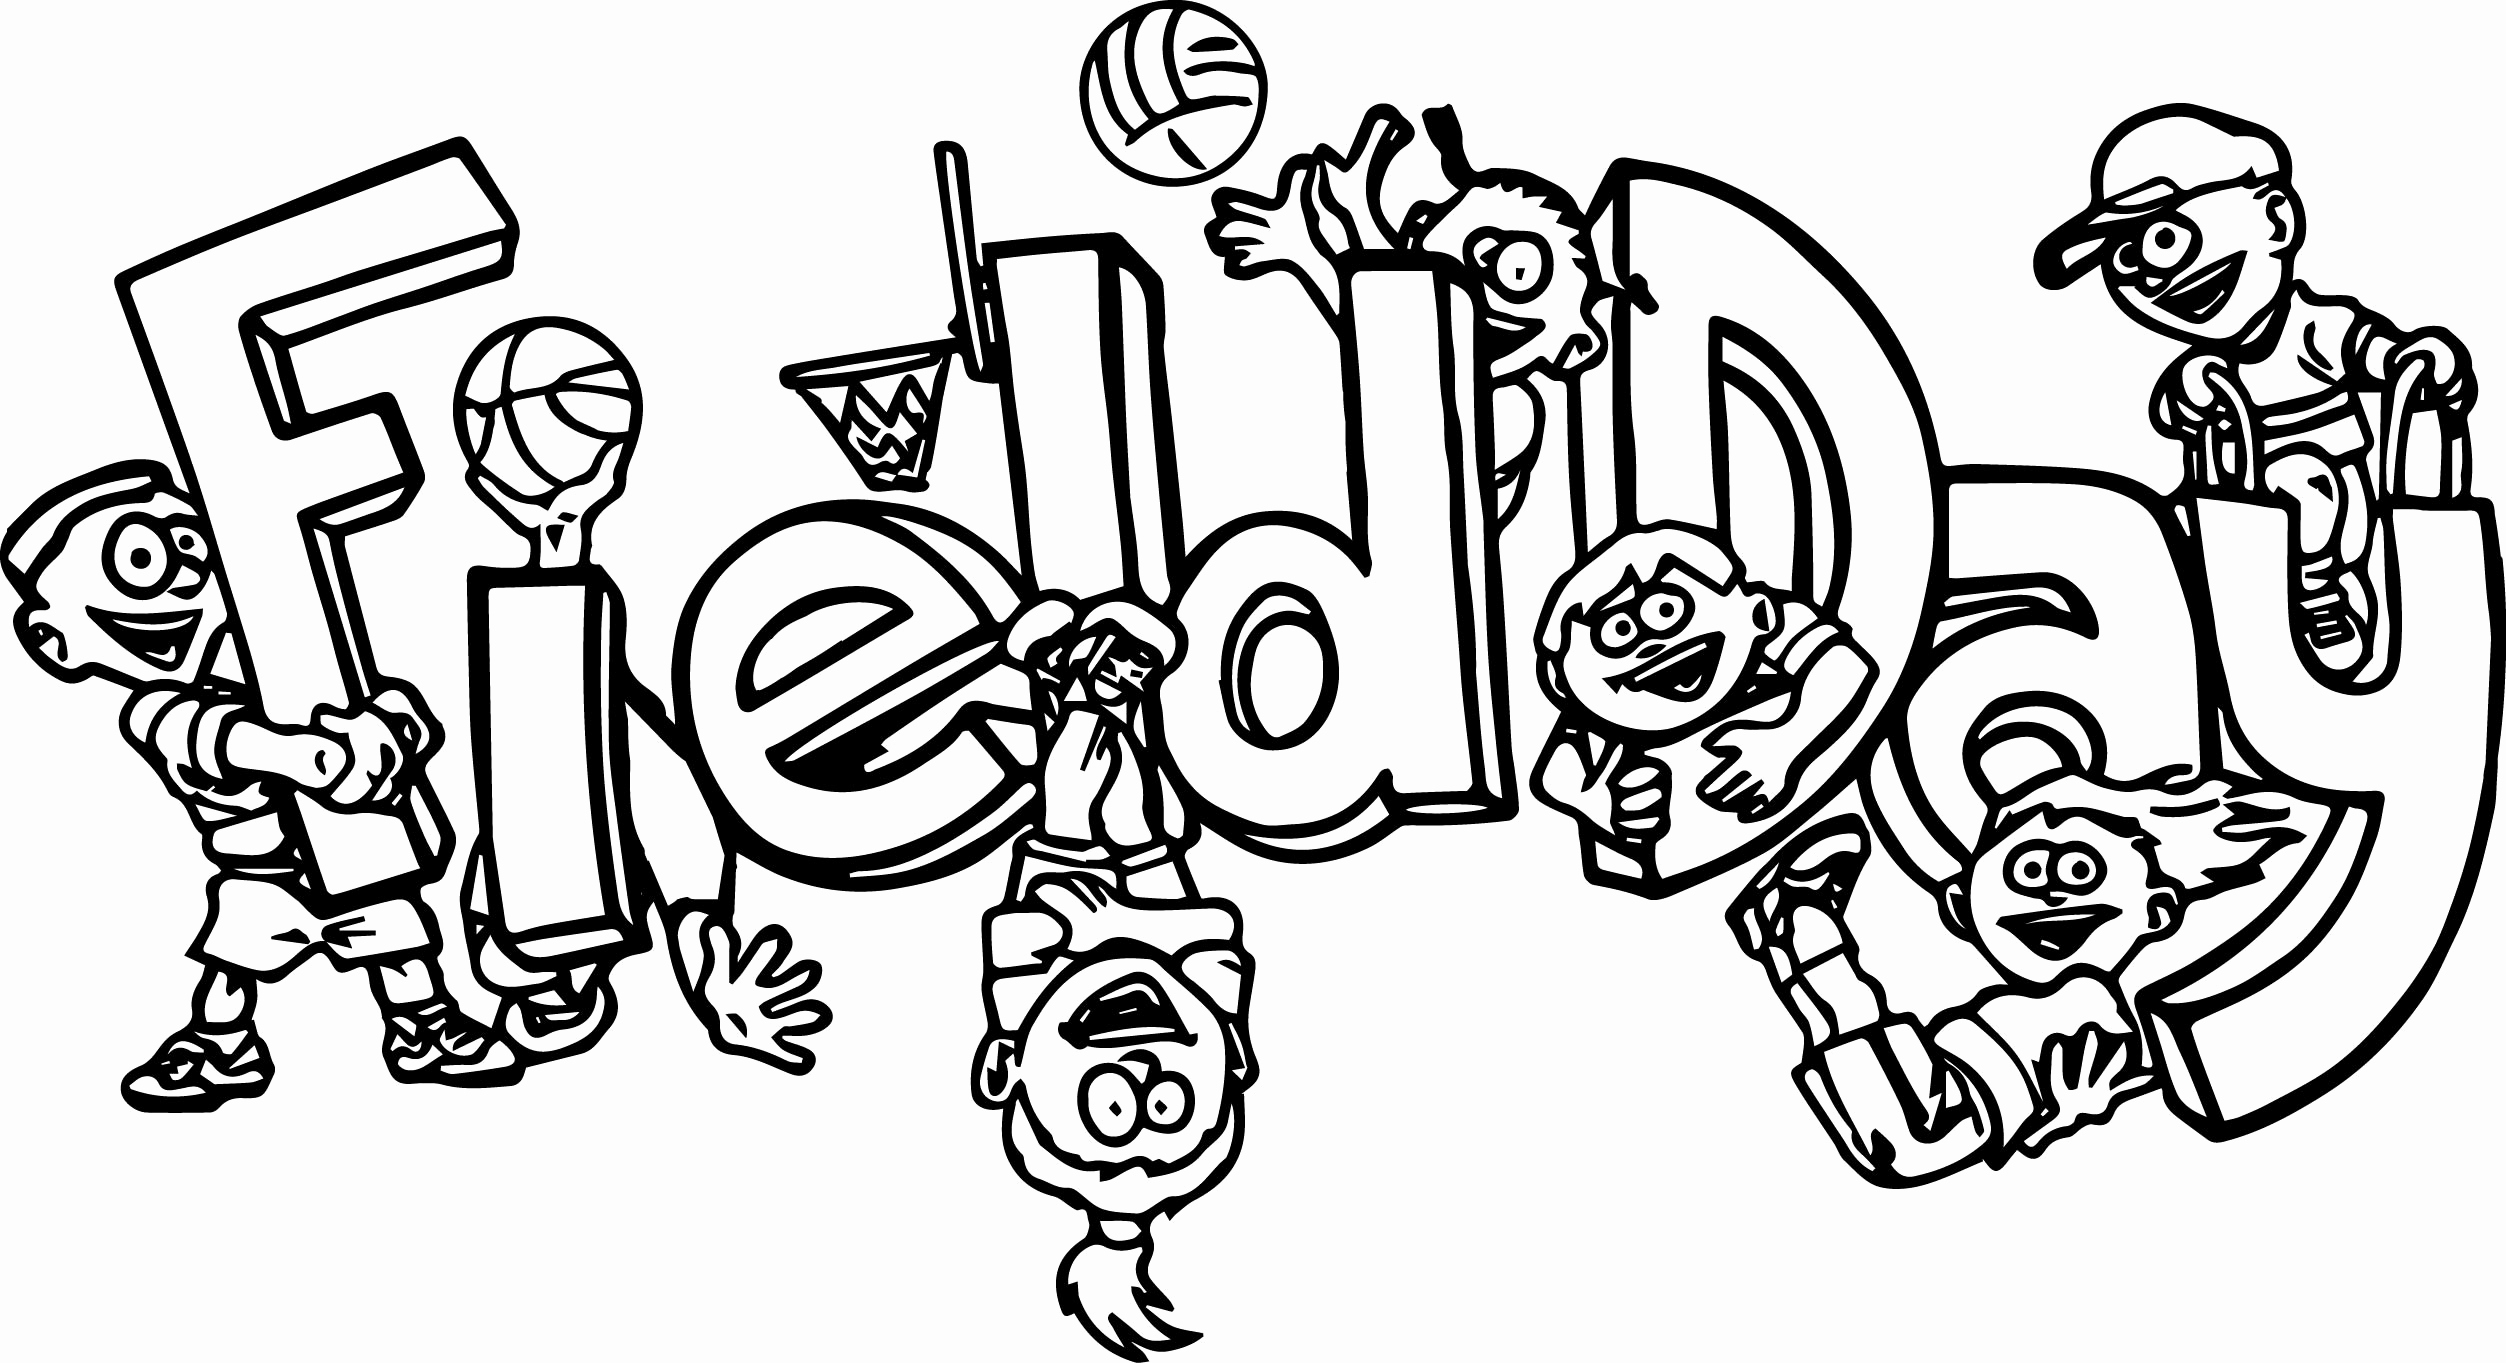 Track And Field Coloring Pages At Getcolorings